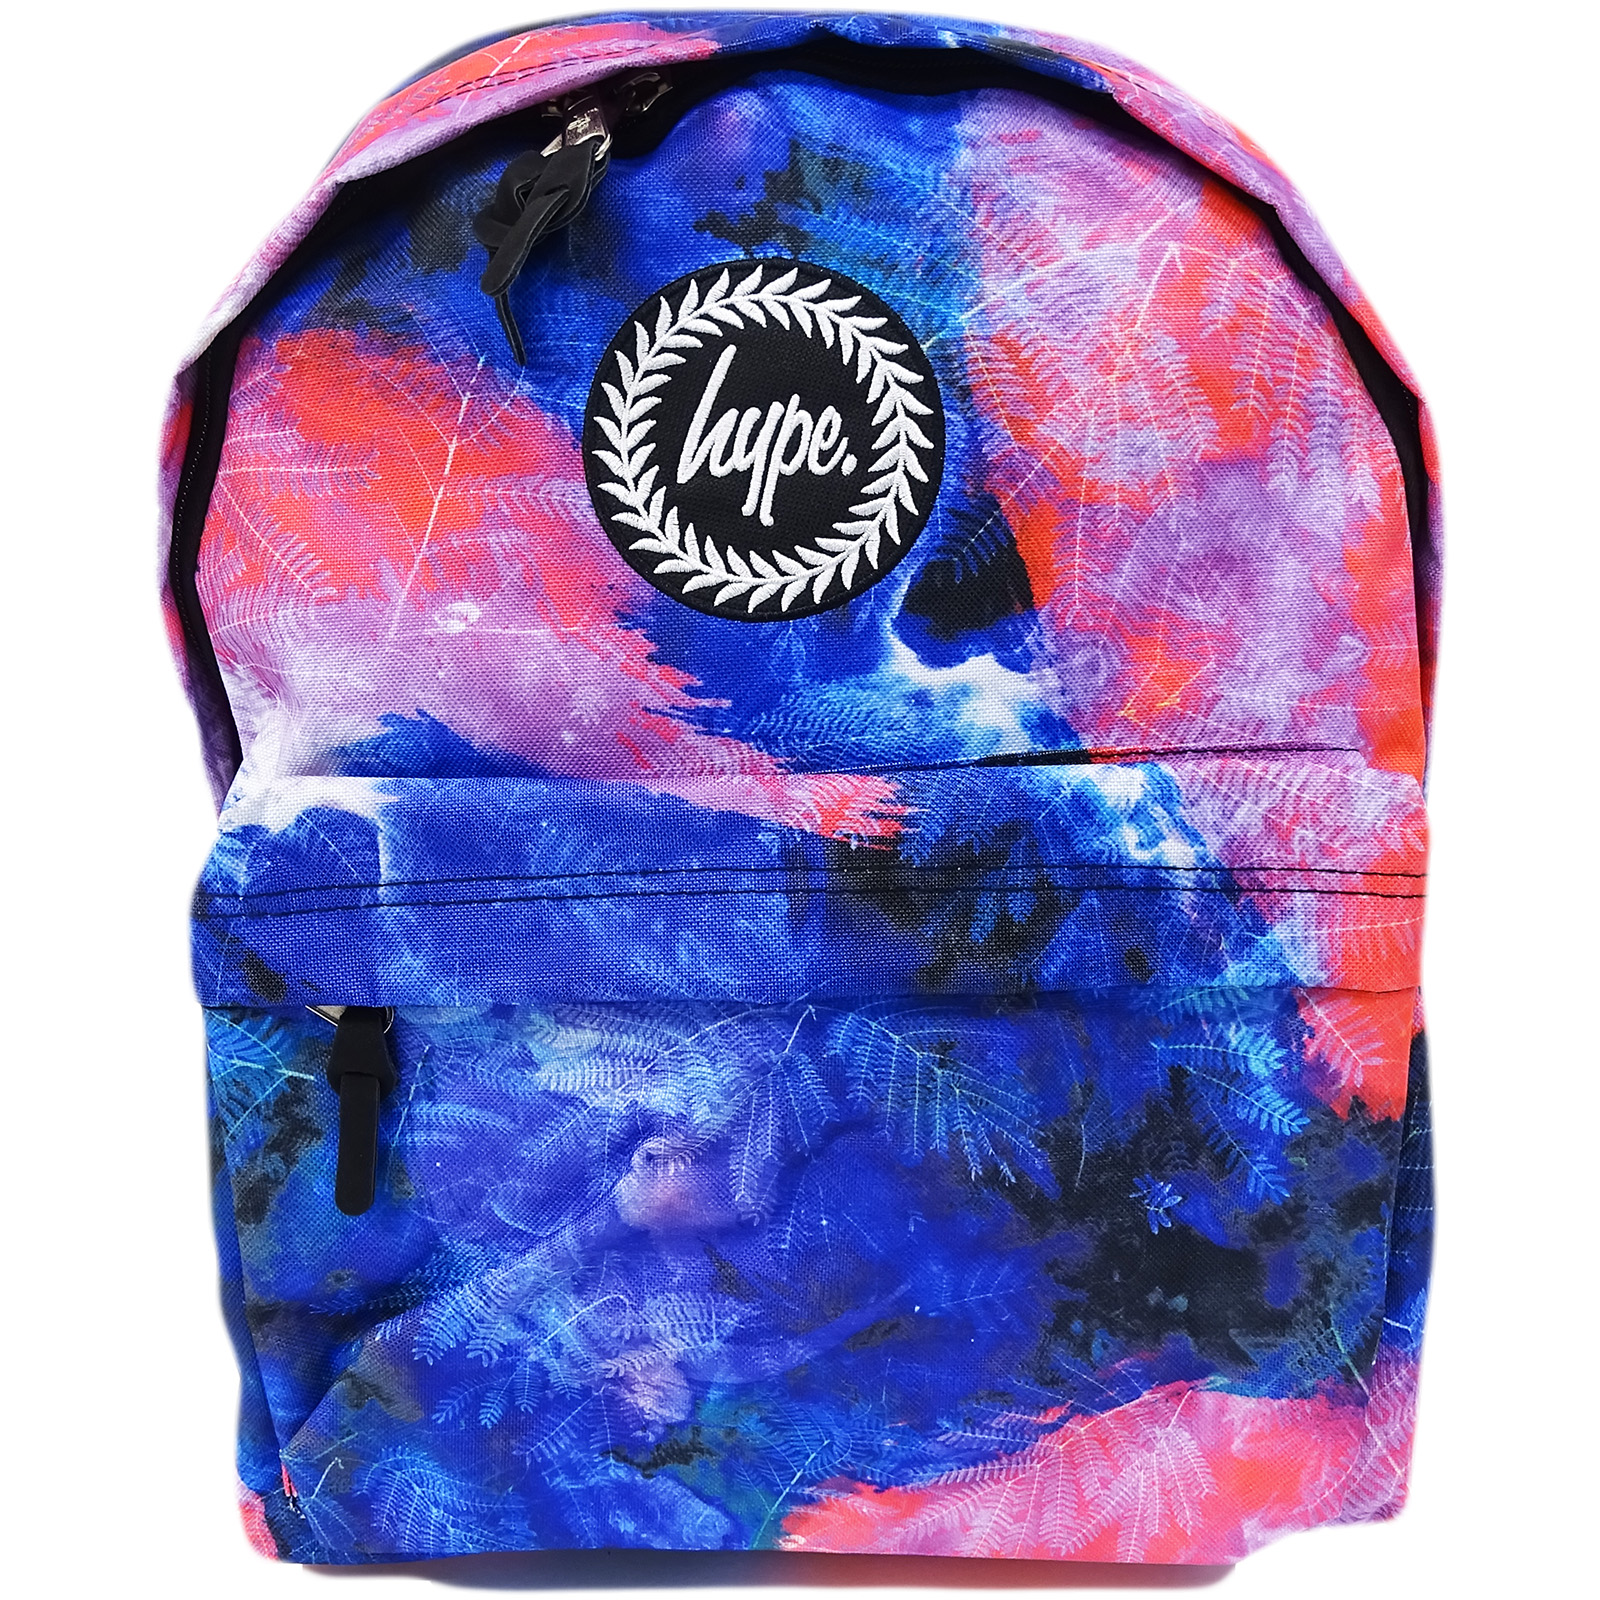 Hype Blue / Pink Backpack / Rucksack Bag Space Garden